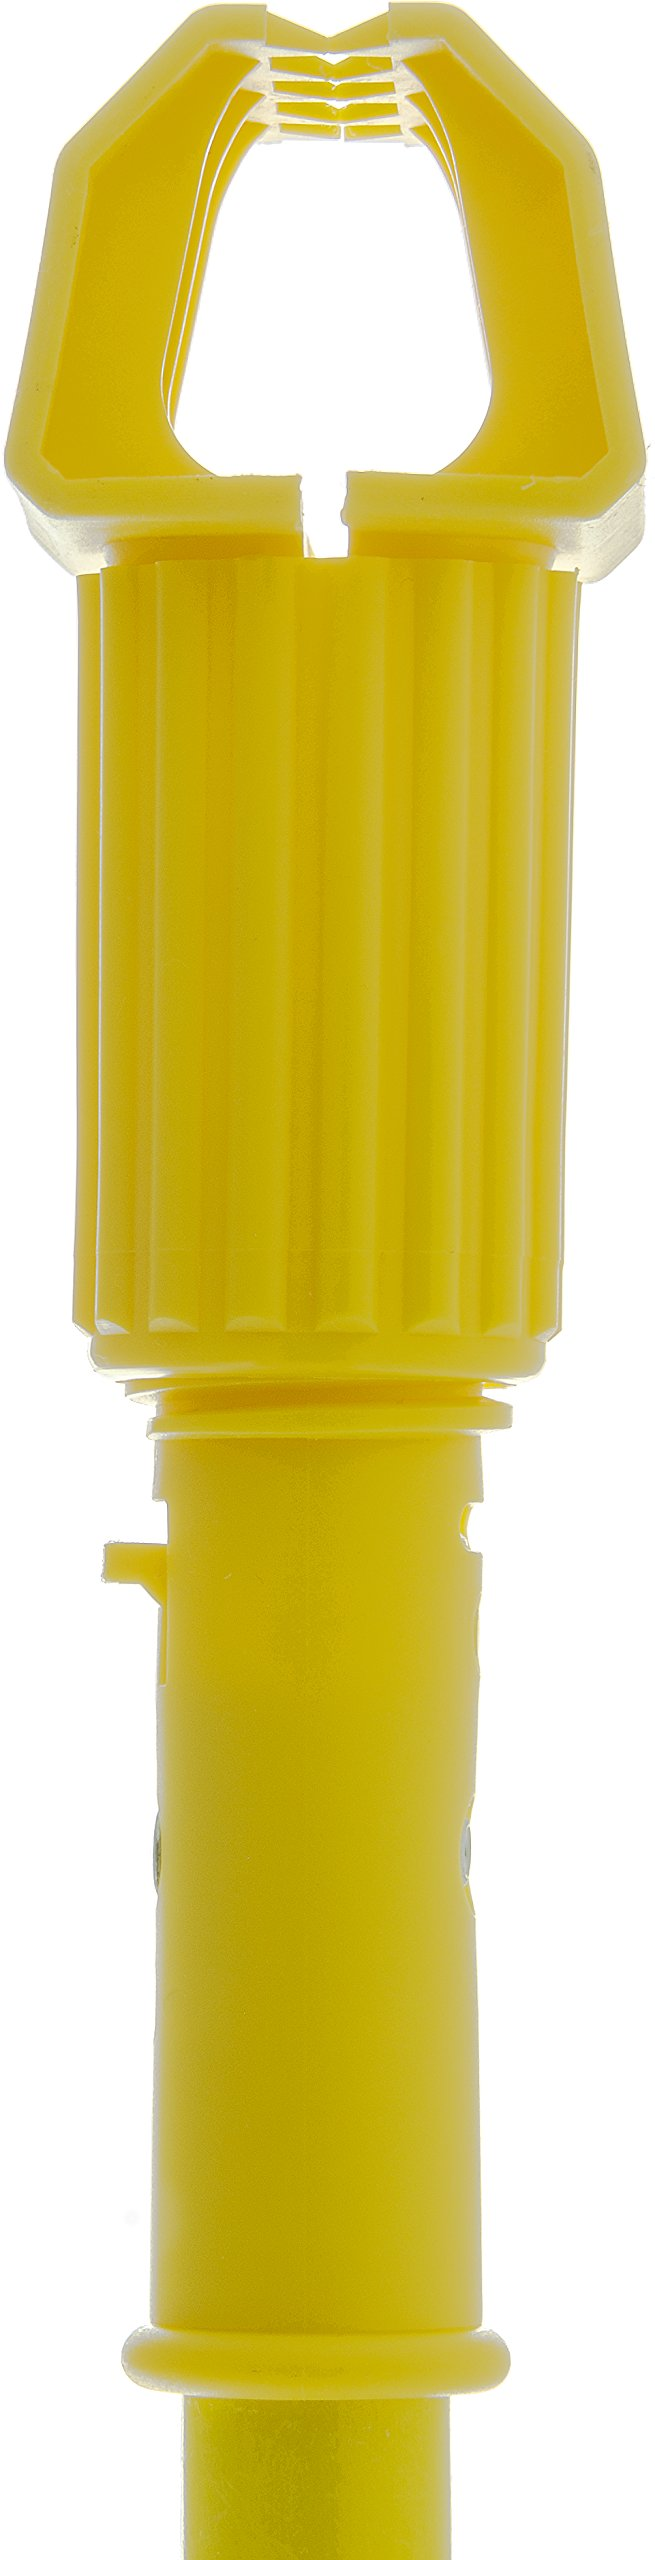 Carlisle 36947504 Commercial Jaw Clamp Fiberglass Wet Mop Handle, 60'', Yellow by Carlisle (Image #2)